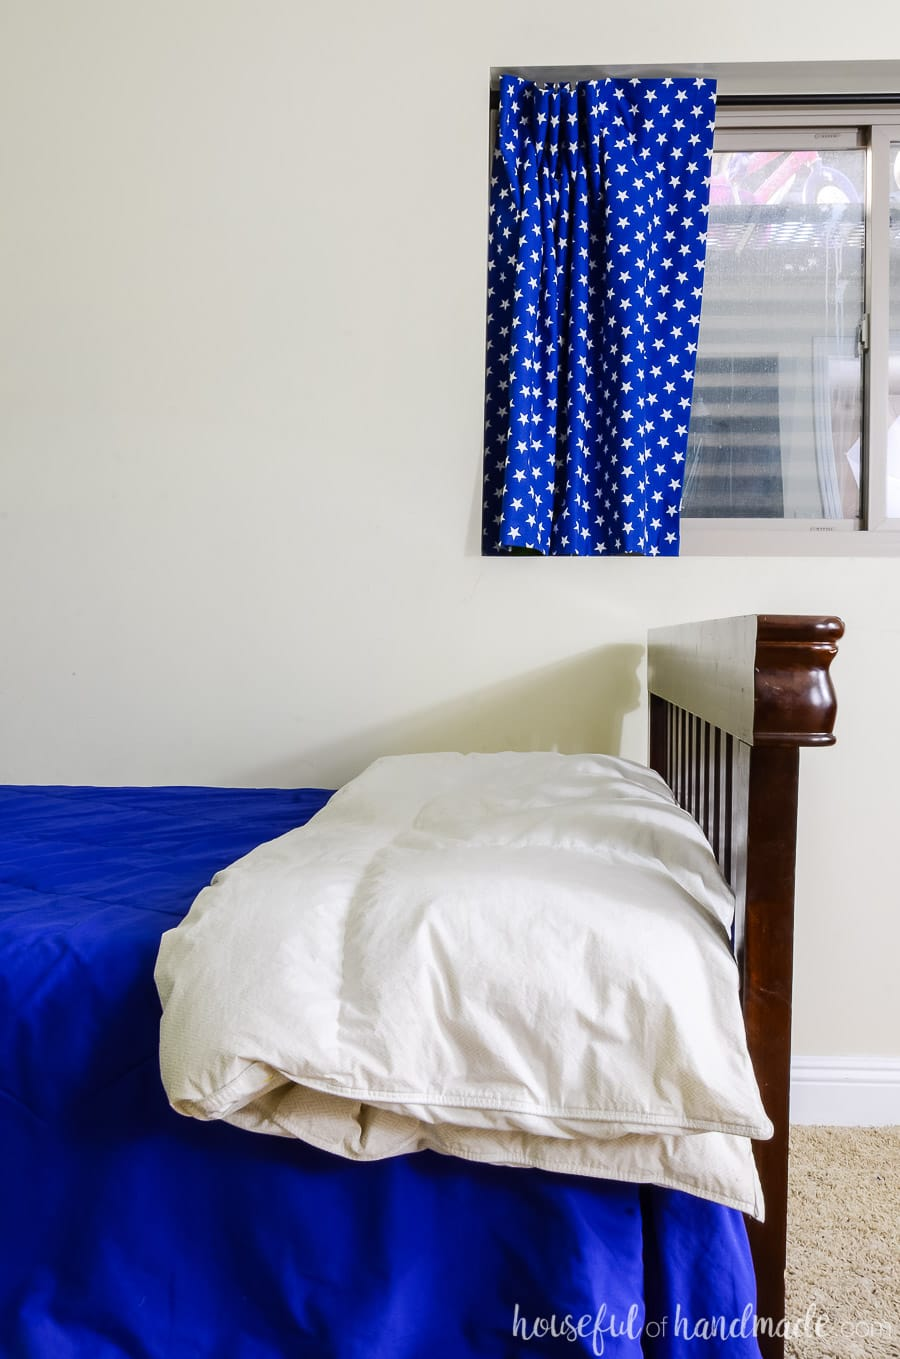 The foot of the bed with a dark wood craftsman footboard and white down comforter. Black out curtains in the window with blue fabric with white stars on it.